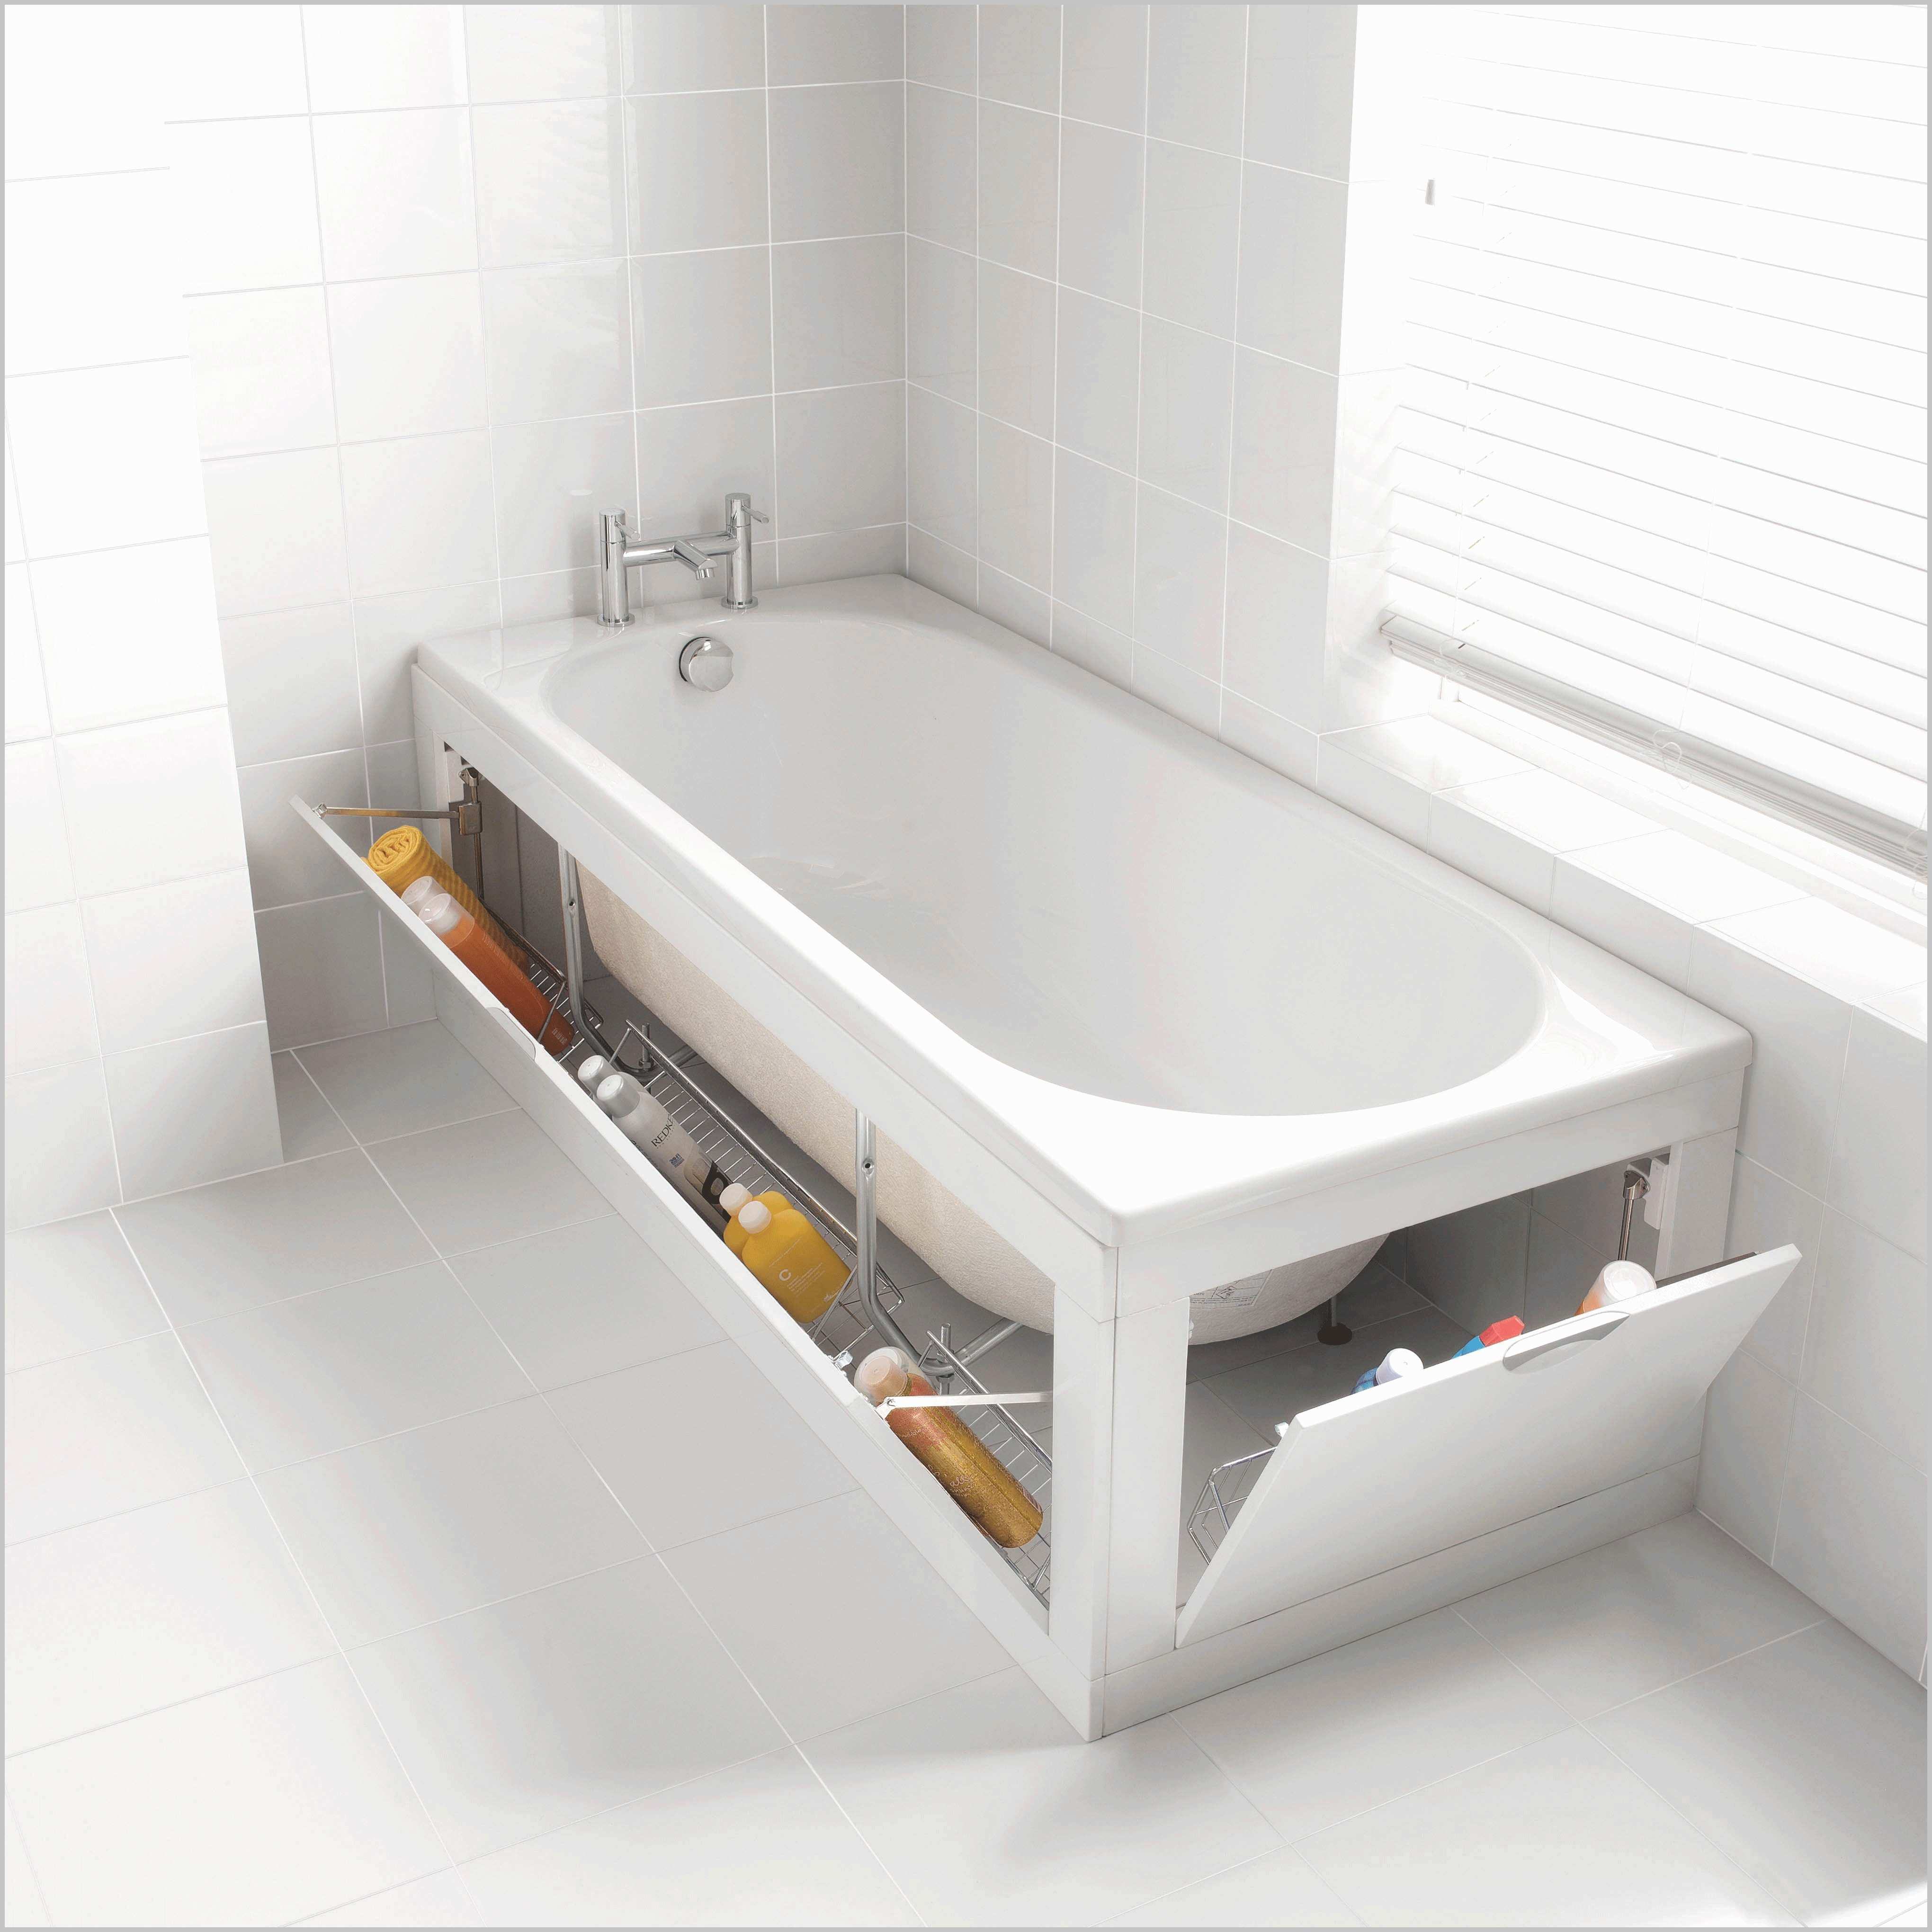 6 Bathtub Storage via simphome